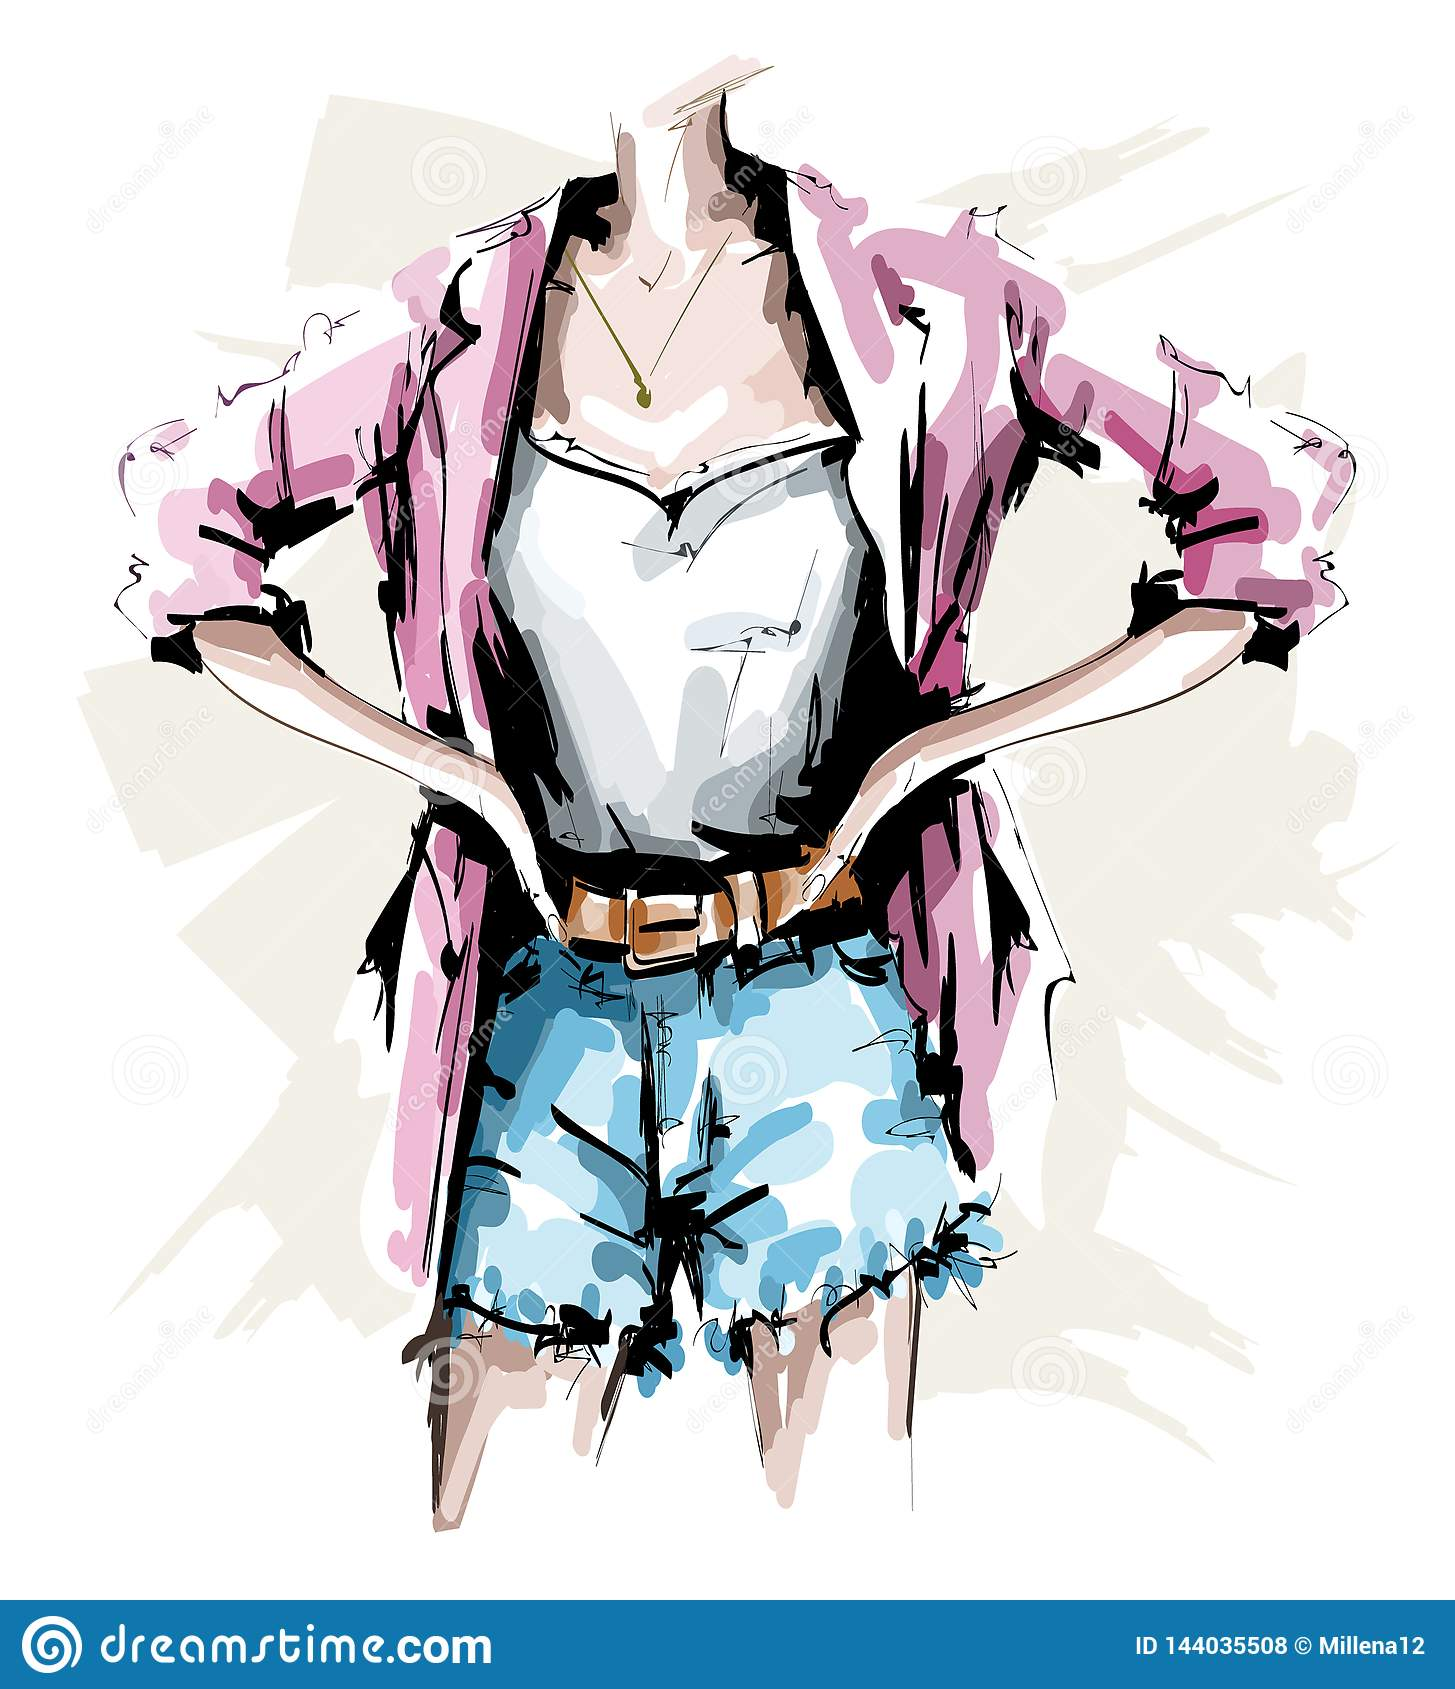 Hand drawn female body. Fashion outfit. Stylish woman look with shorts, shirt, jacket and accessories. Sketch.